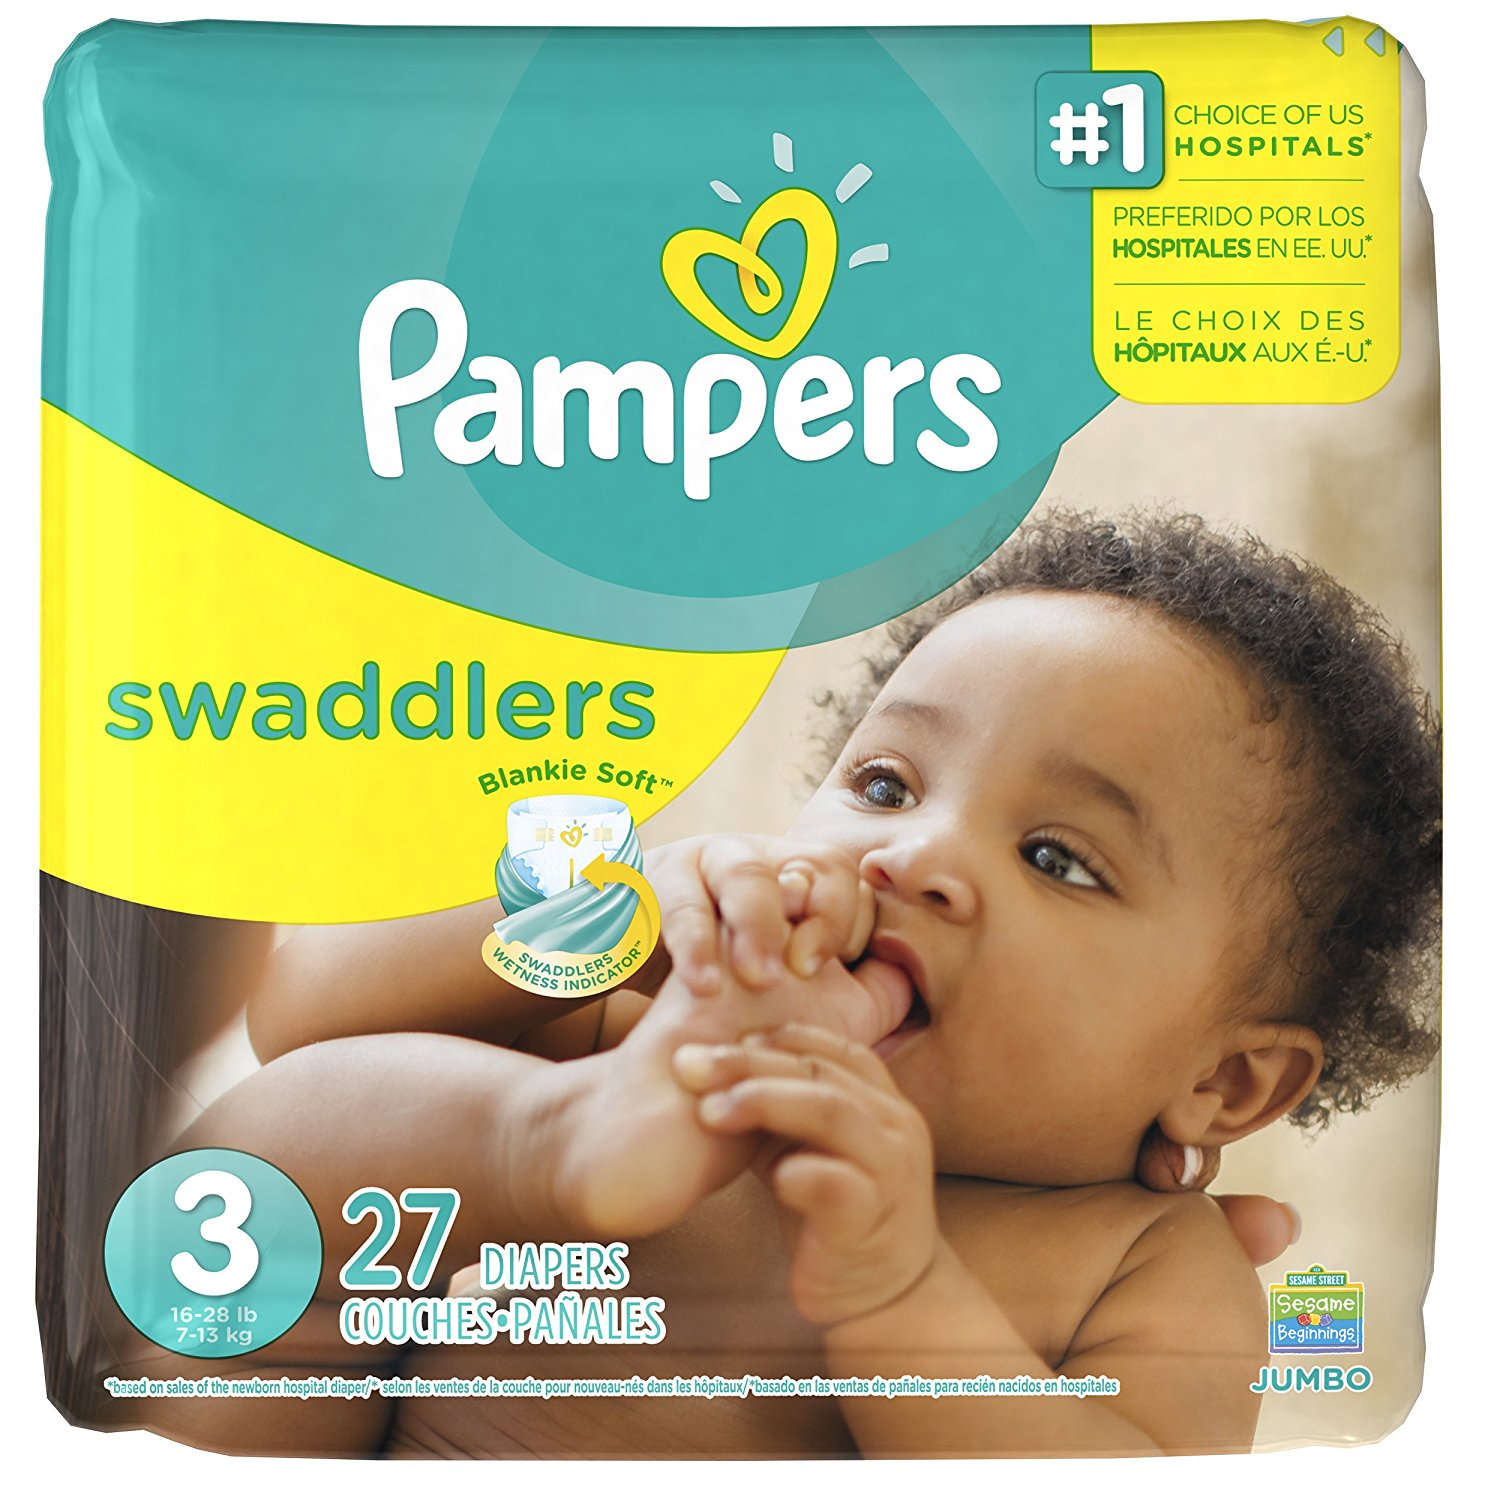 Swaddlers Diapers - Size 3 - 27 ct, ship from USA,Brand Pampers